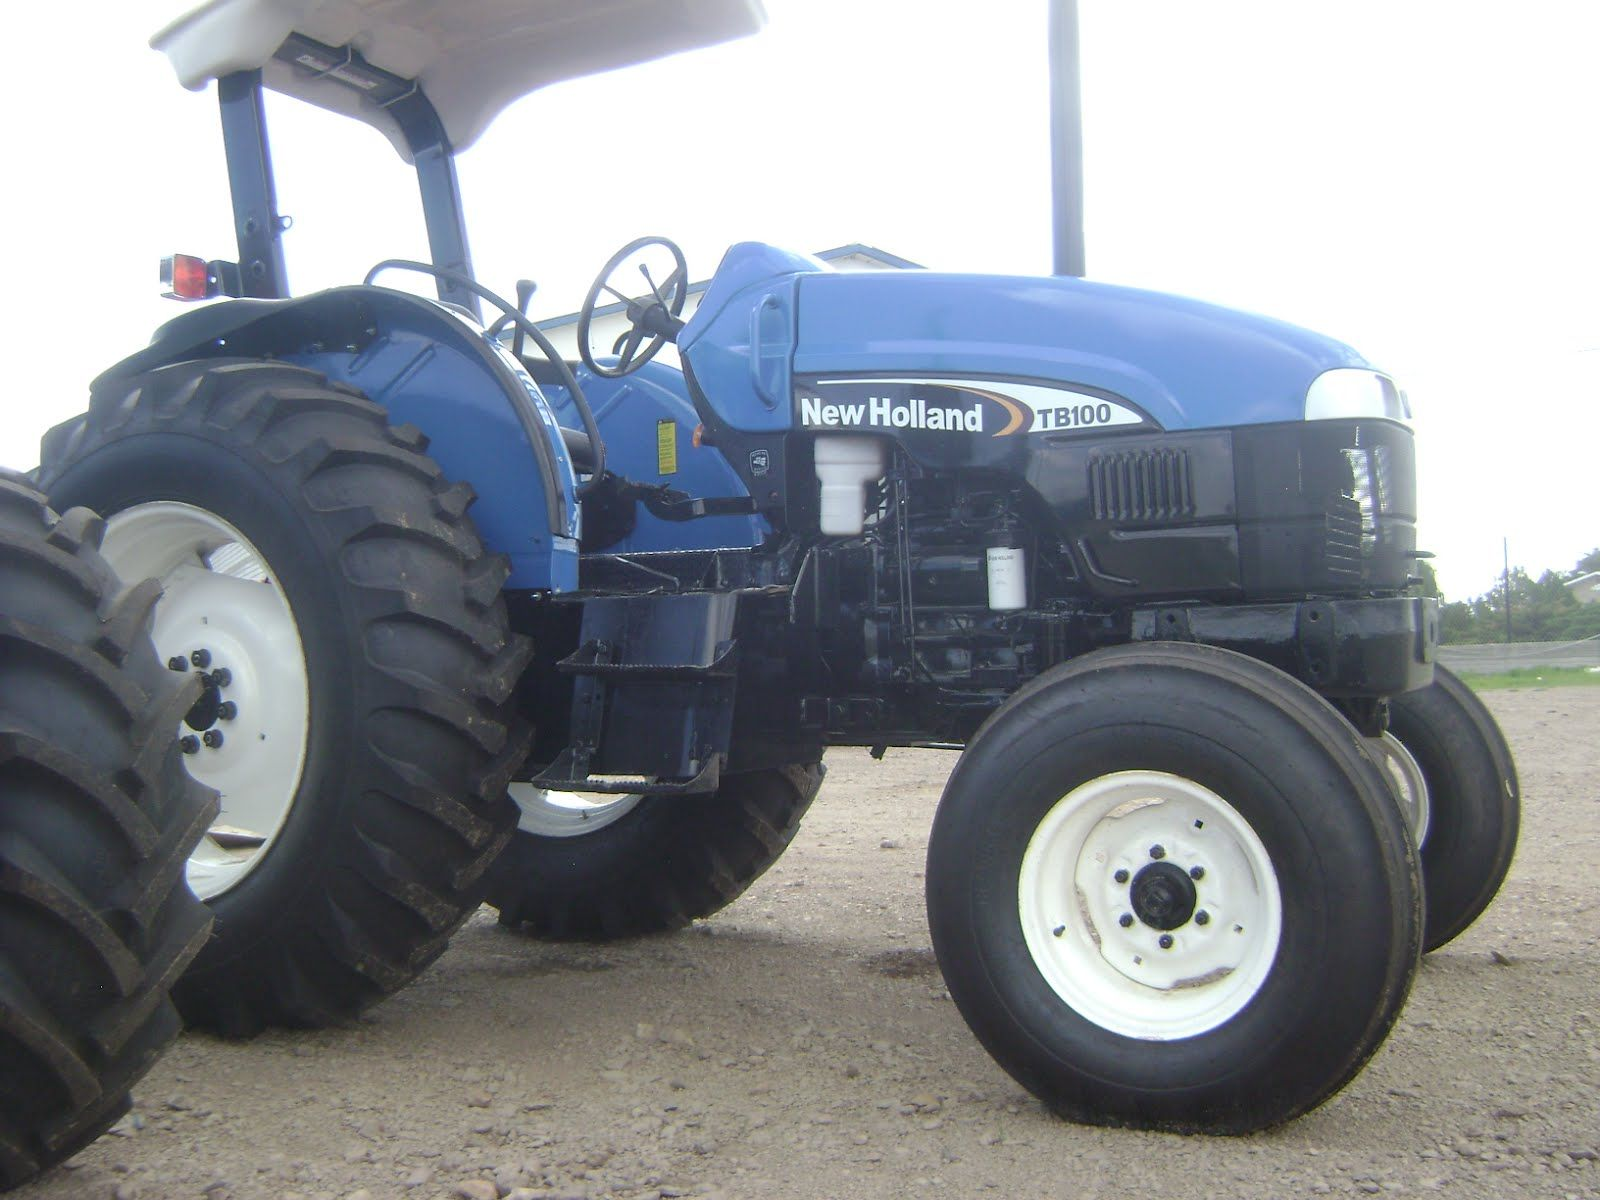 New Holland 4 Cylinder Ag Tractor Parts List Manual Book, arts listing took  off perspectives will certainly additionally assist you in servicing,  overhauls, ...